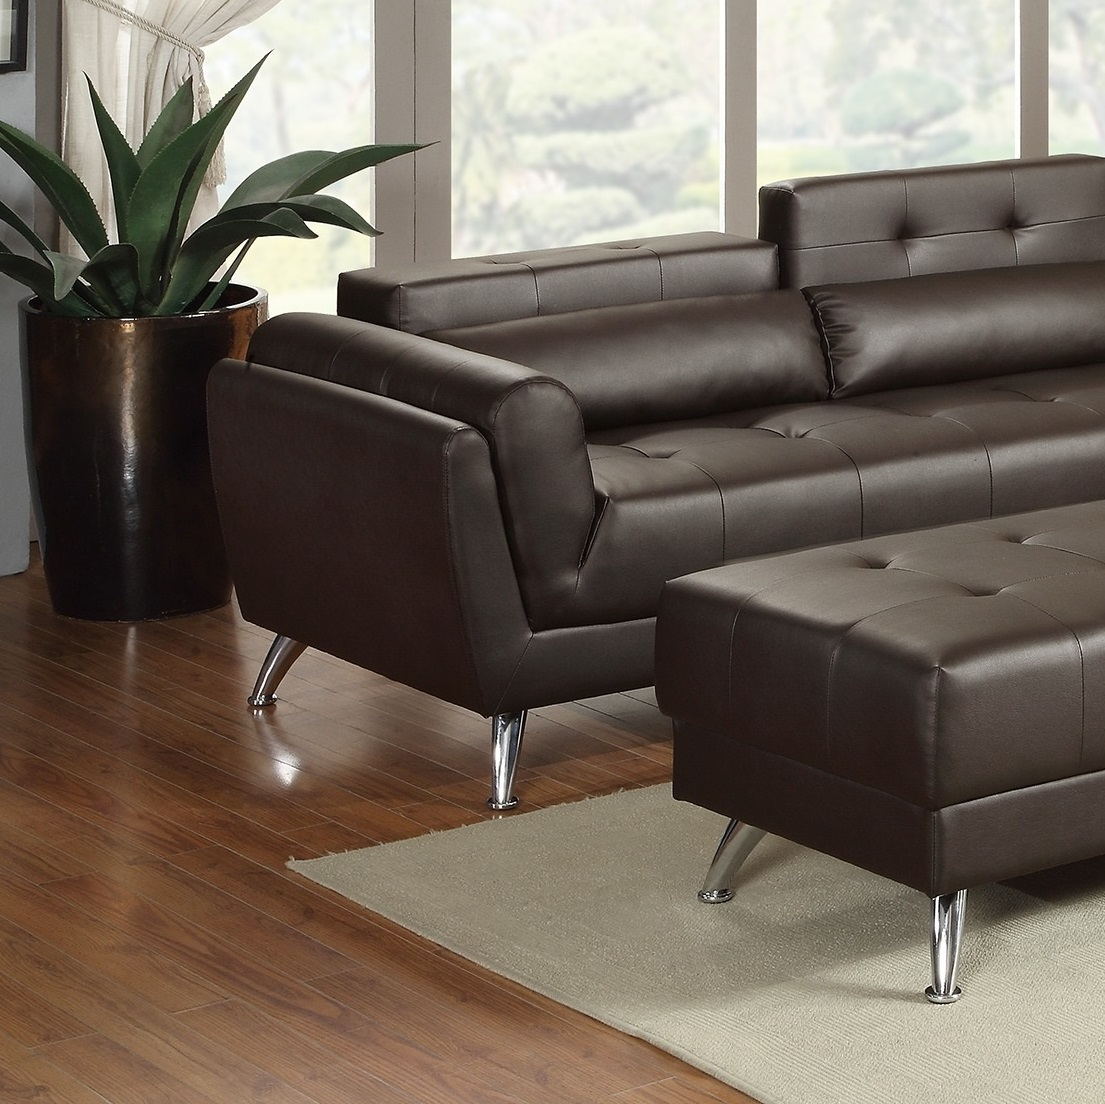 New Sectional Poundex Leather Espresso Sofa Hot Sectionals